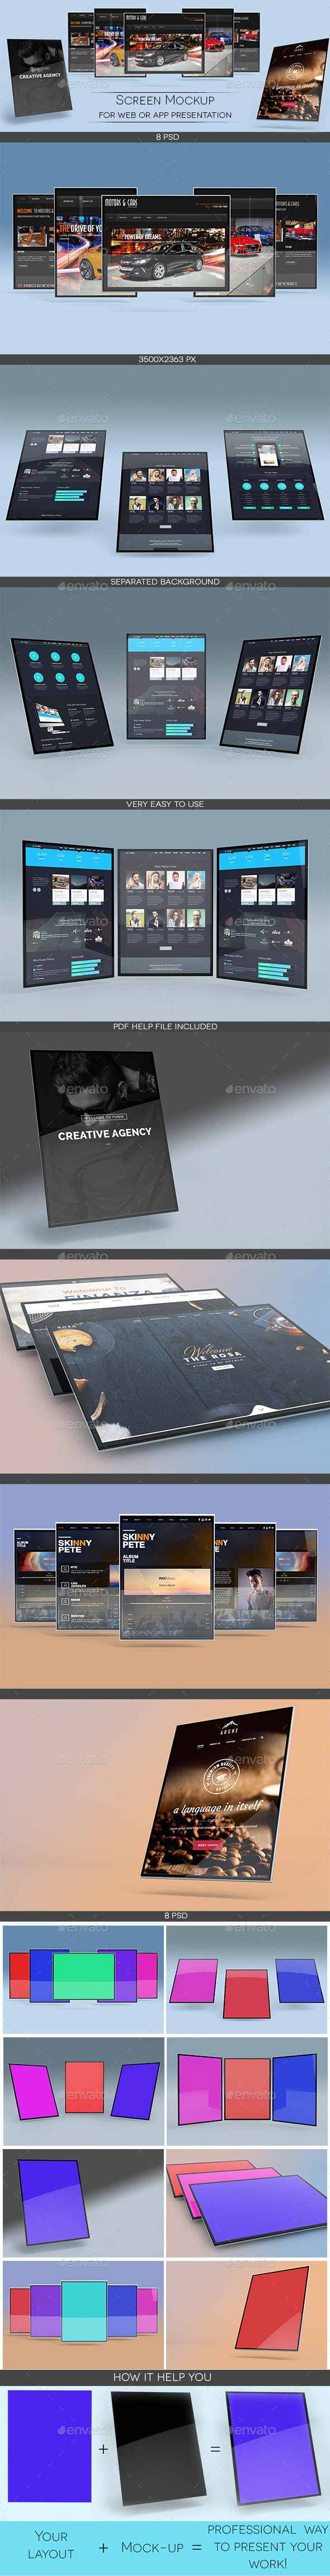 Screen Mockup - Displays Product Mock-Ups